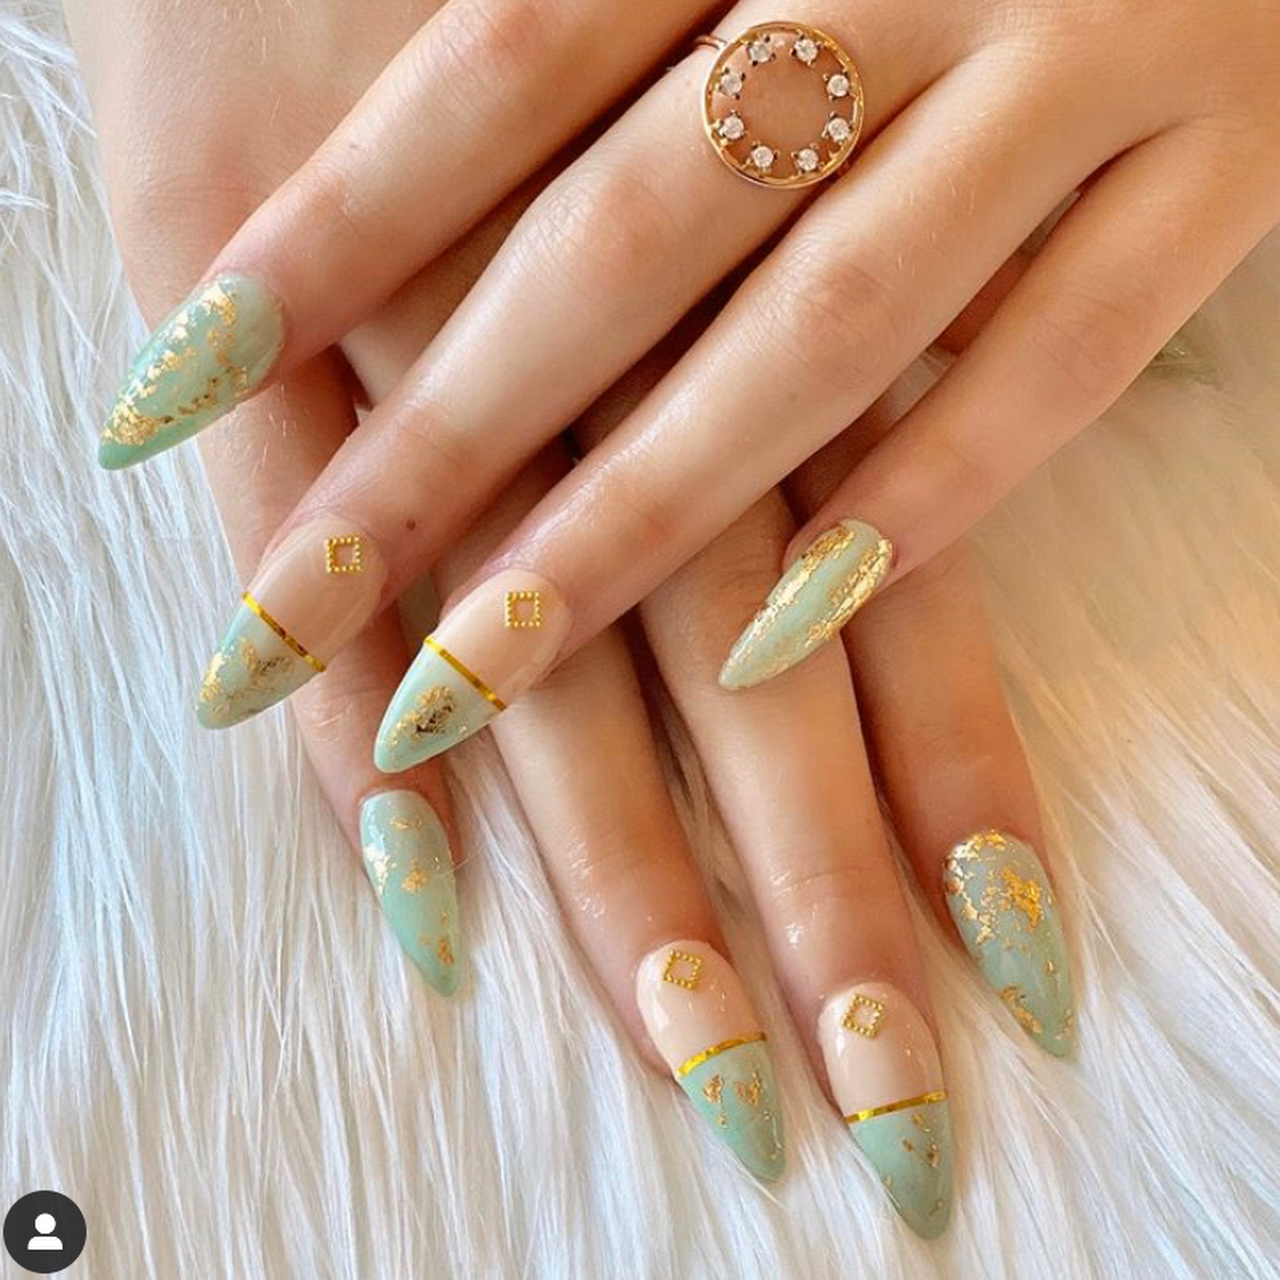 The Best Nails Lounge Spa Nail Salon In Danvers